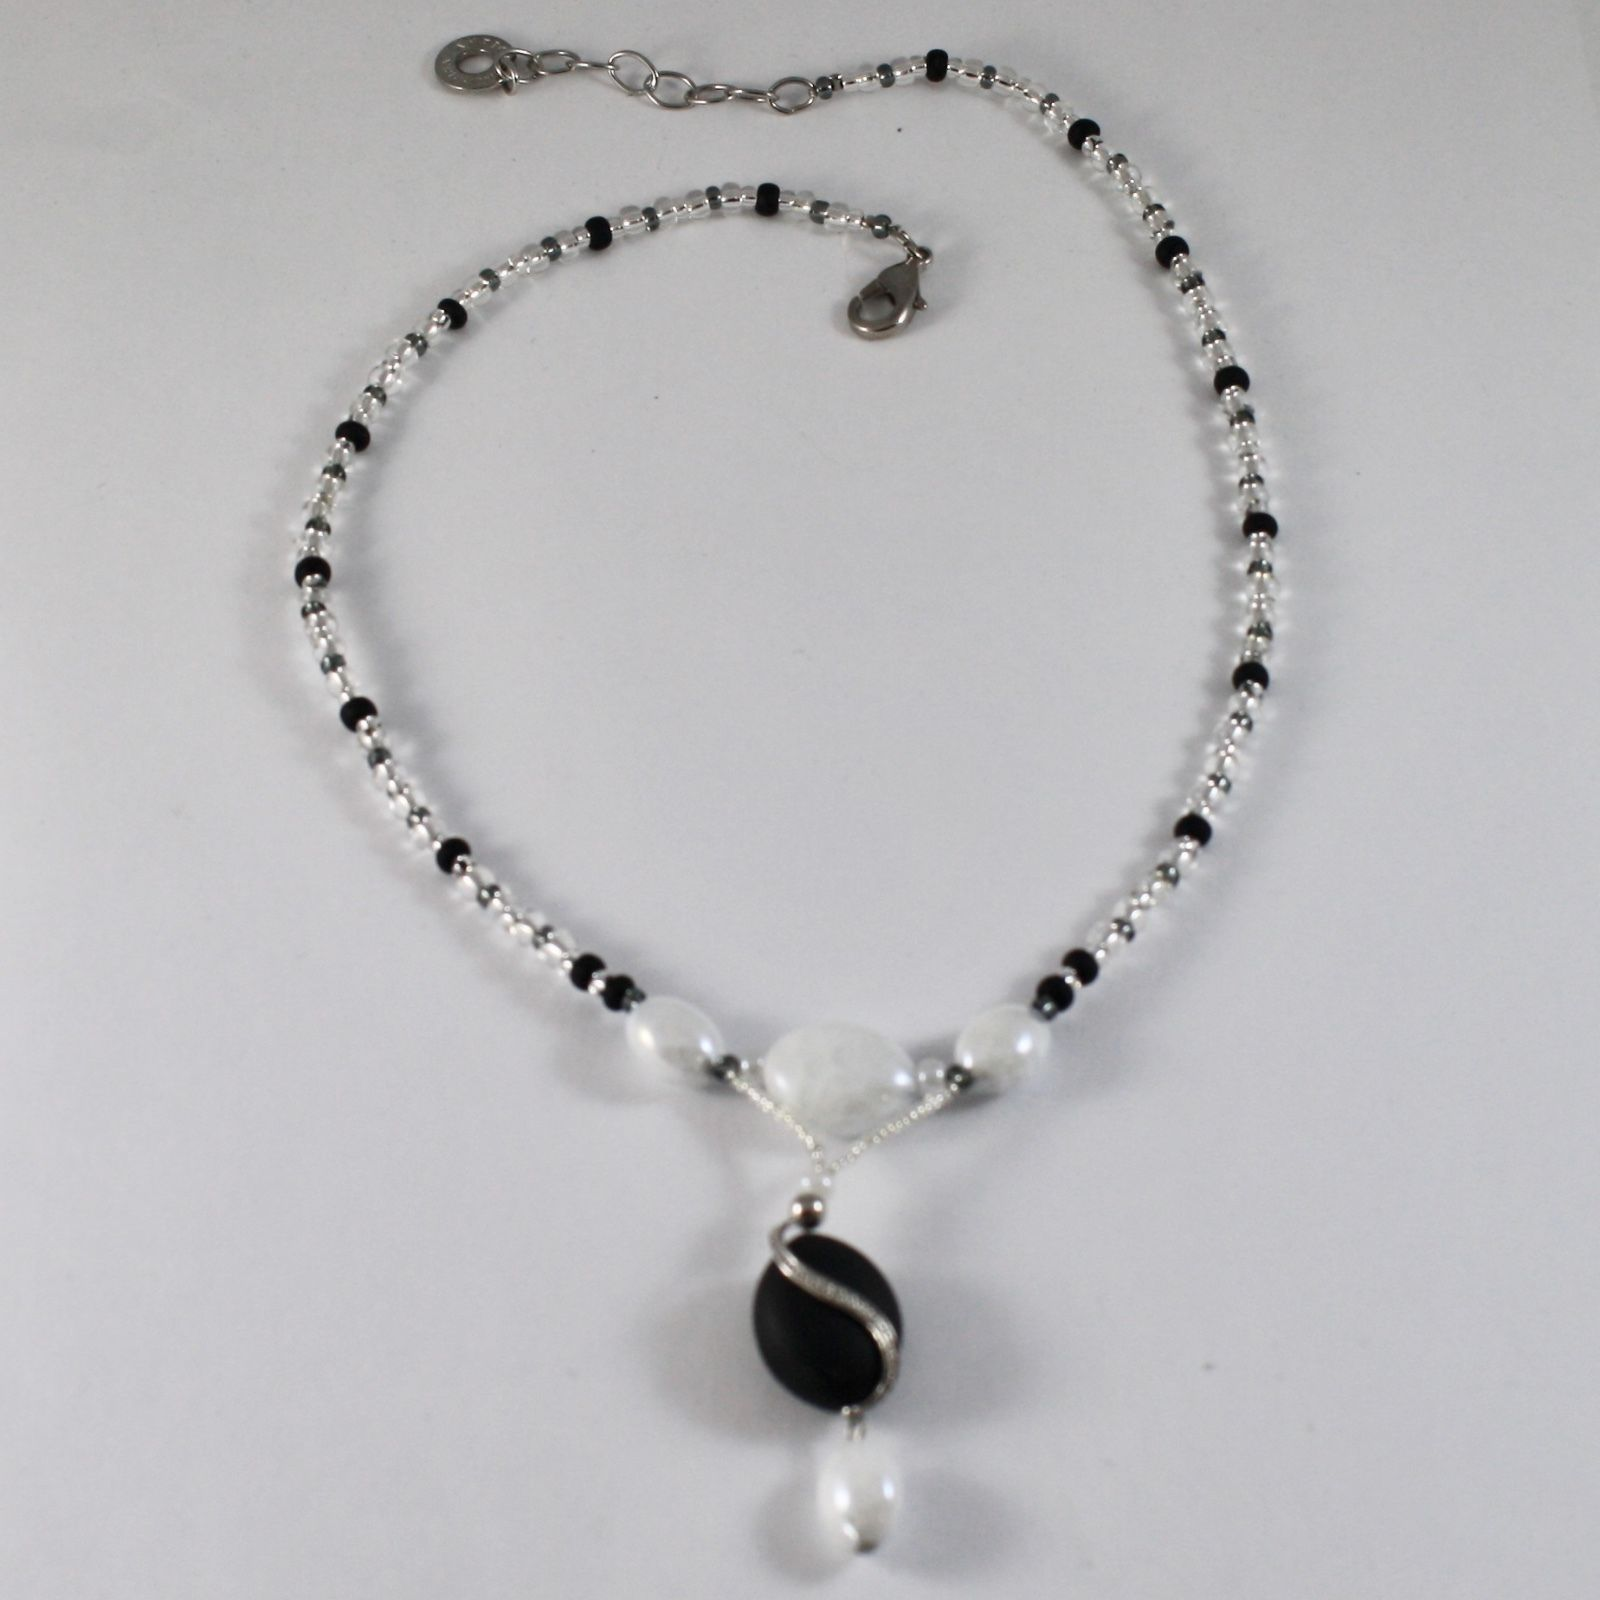 NECKLACE ANTIQUE MURRINA VENICE WITH MURANO GLASS BLACK AND WHITE , ADJUSTABLE